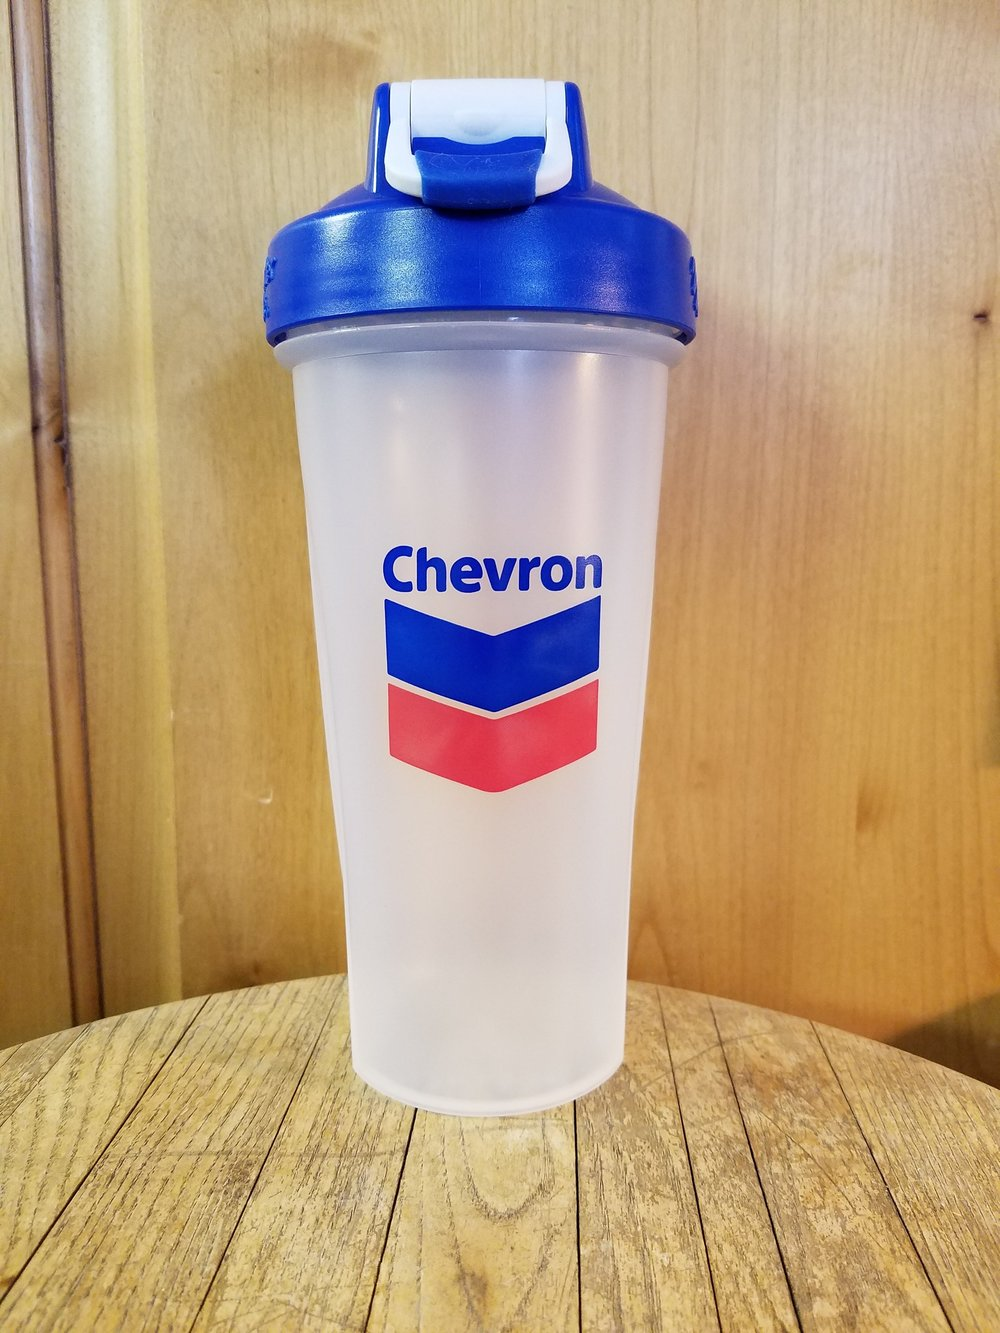 Chevron bottle.jpg